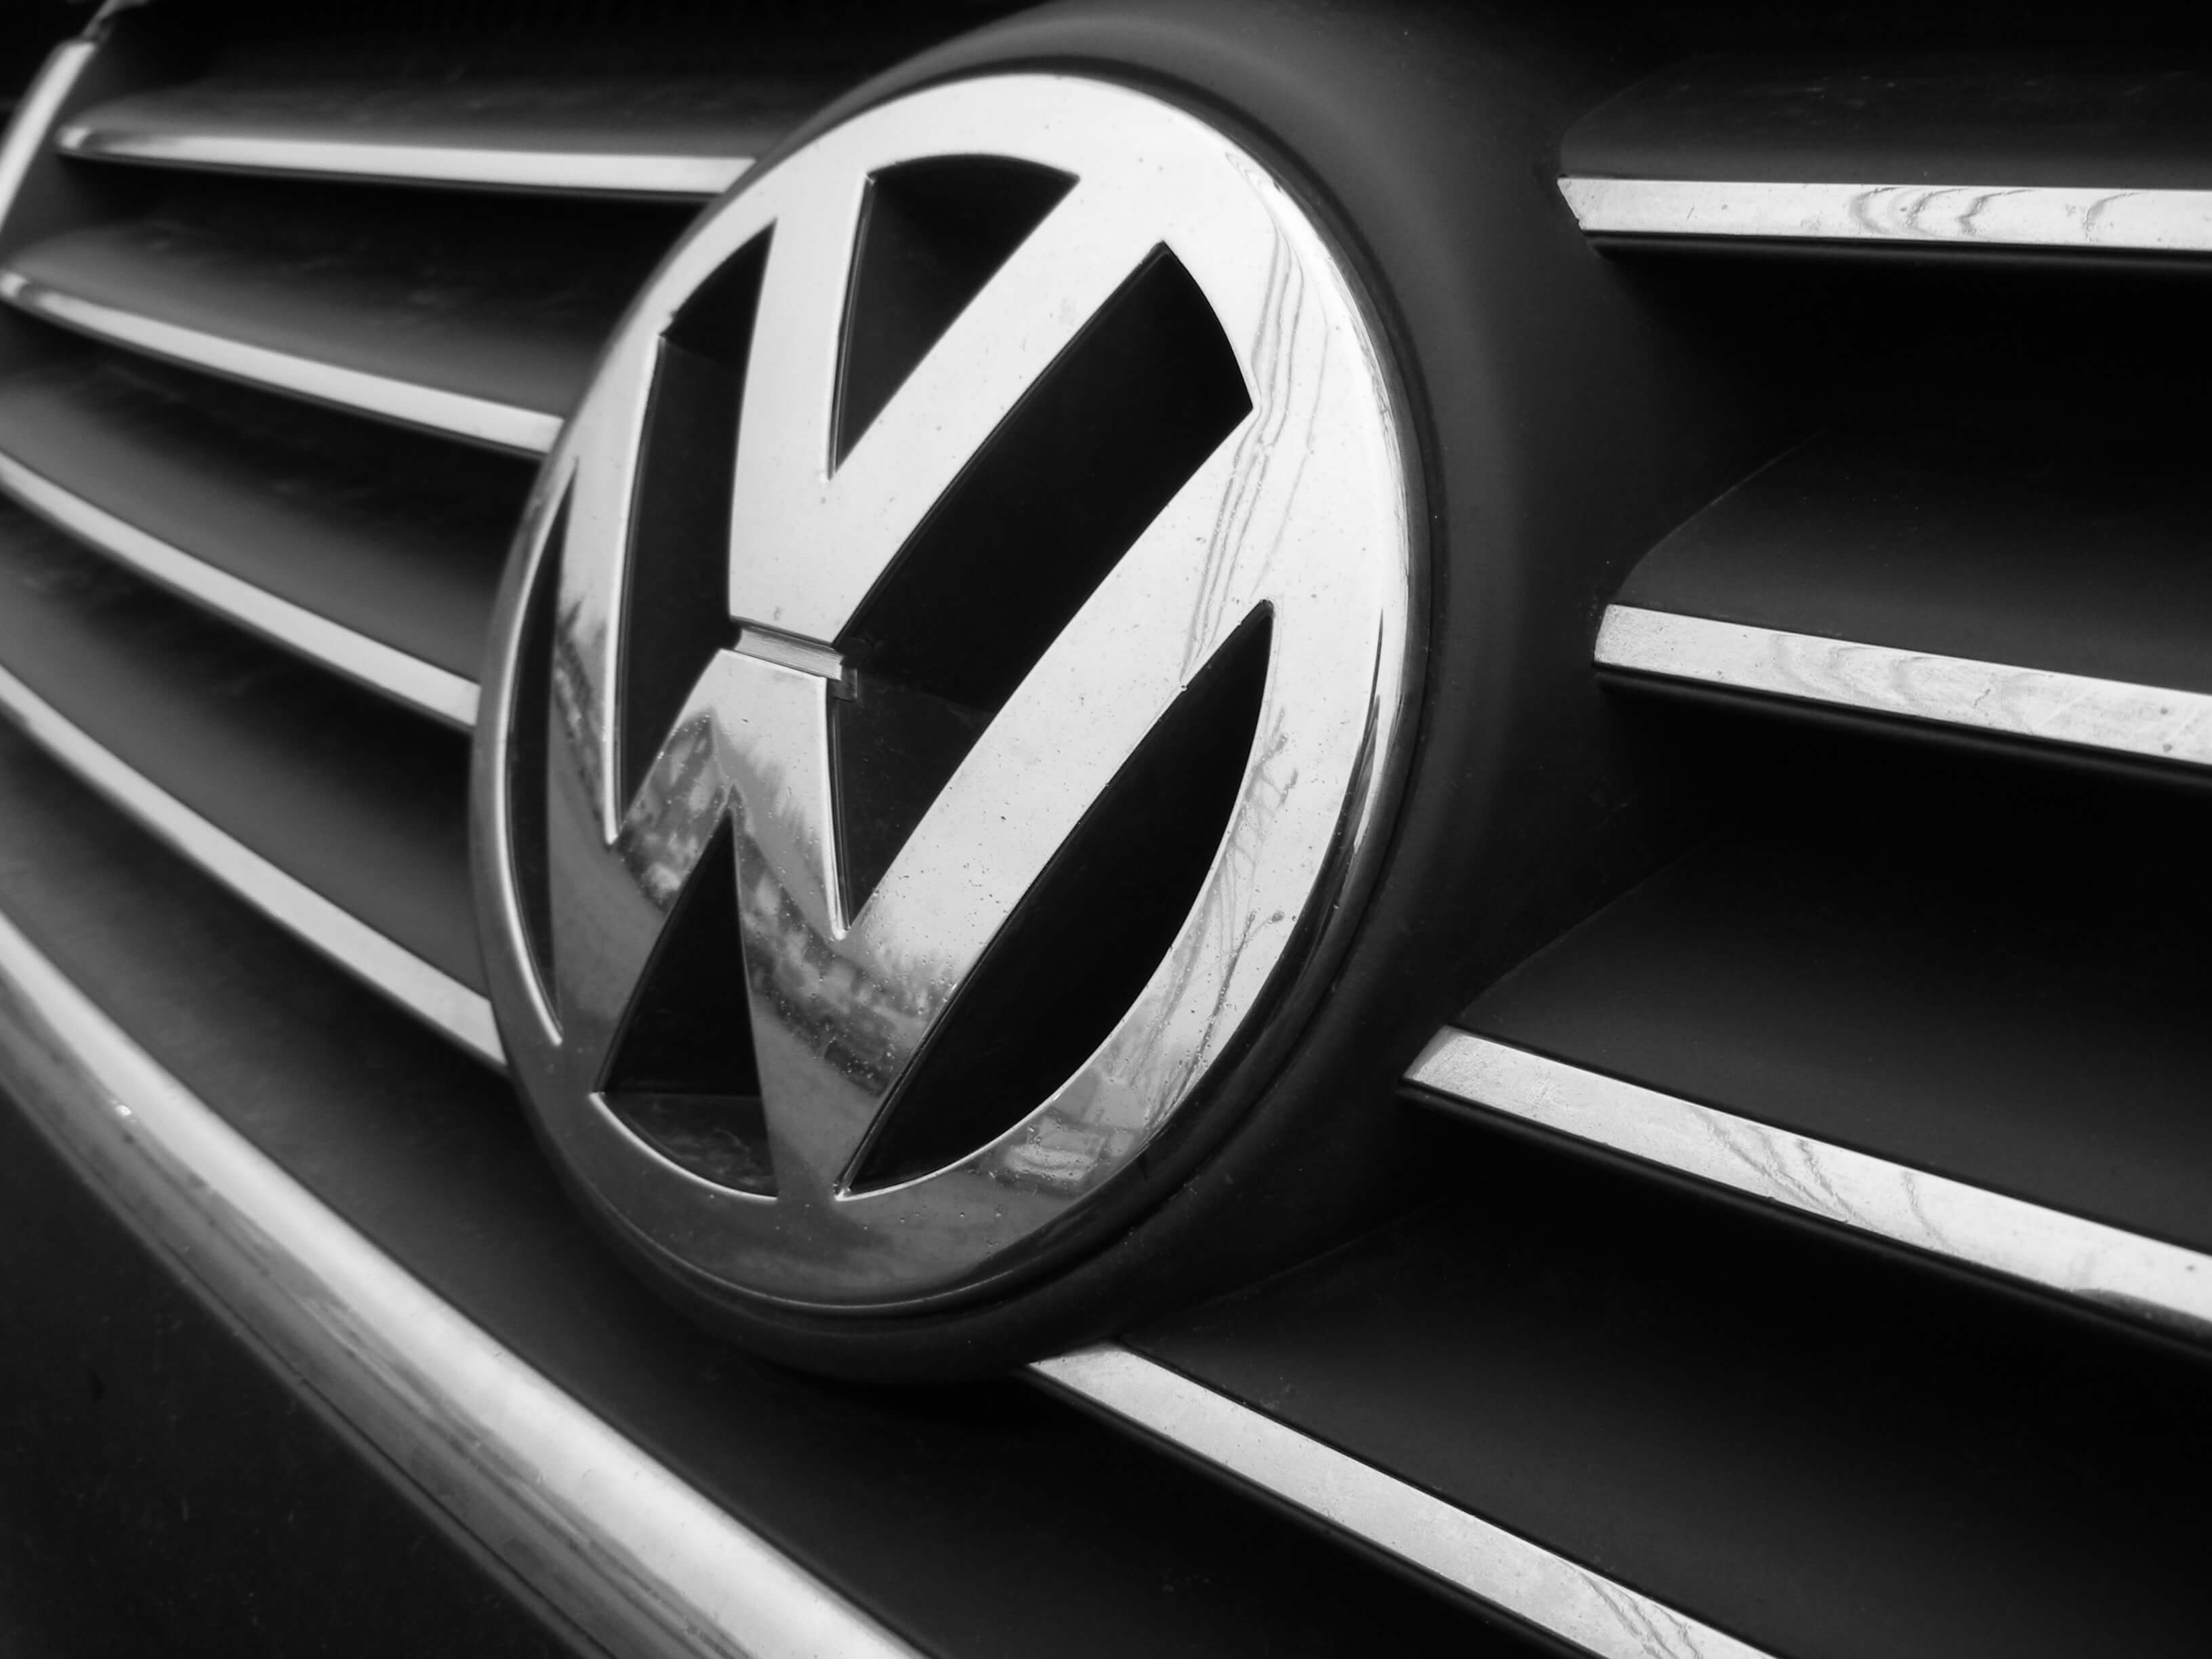 3 Social Media Lessons Learnt From the Volkswagen Scandal